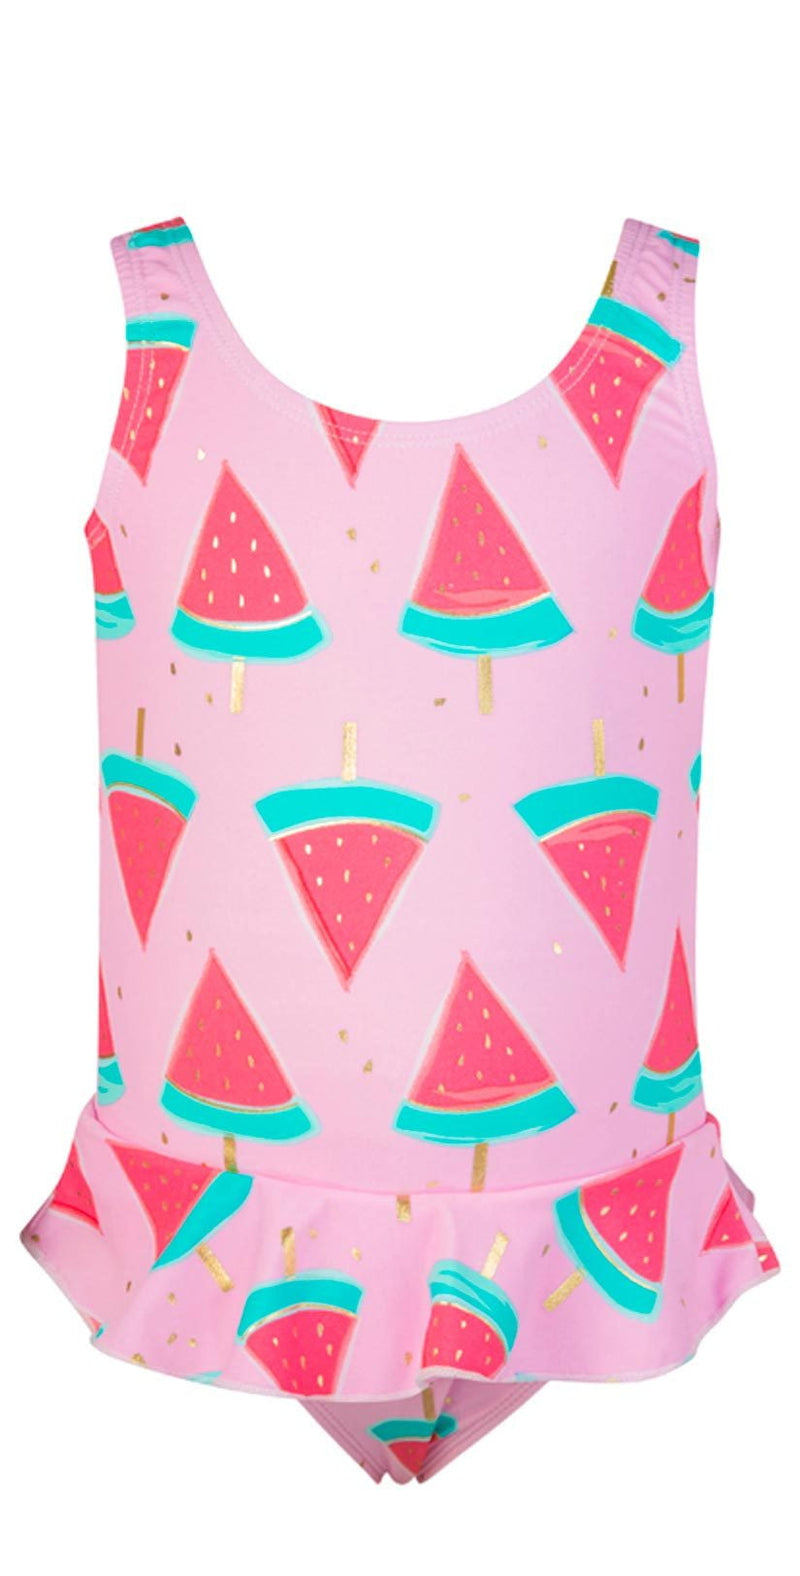 Snapperrock Little Girl's Skirted Watermelon Swimsuit G13049: